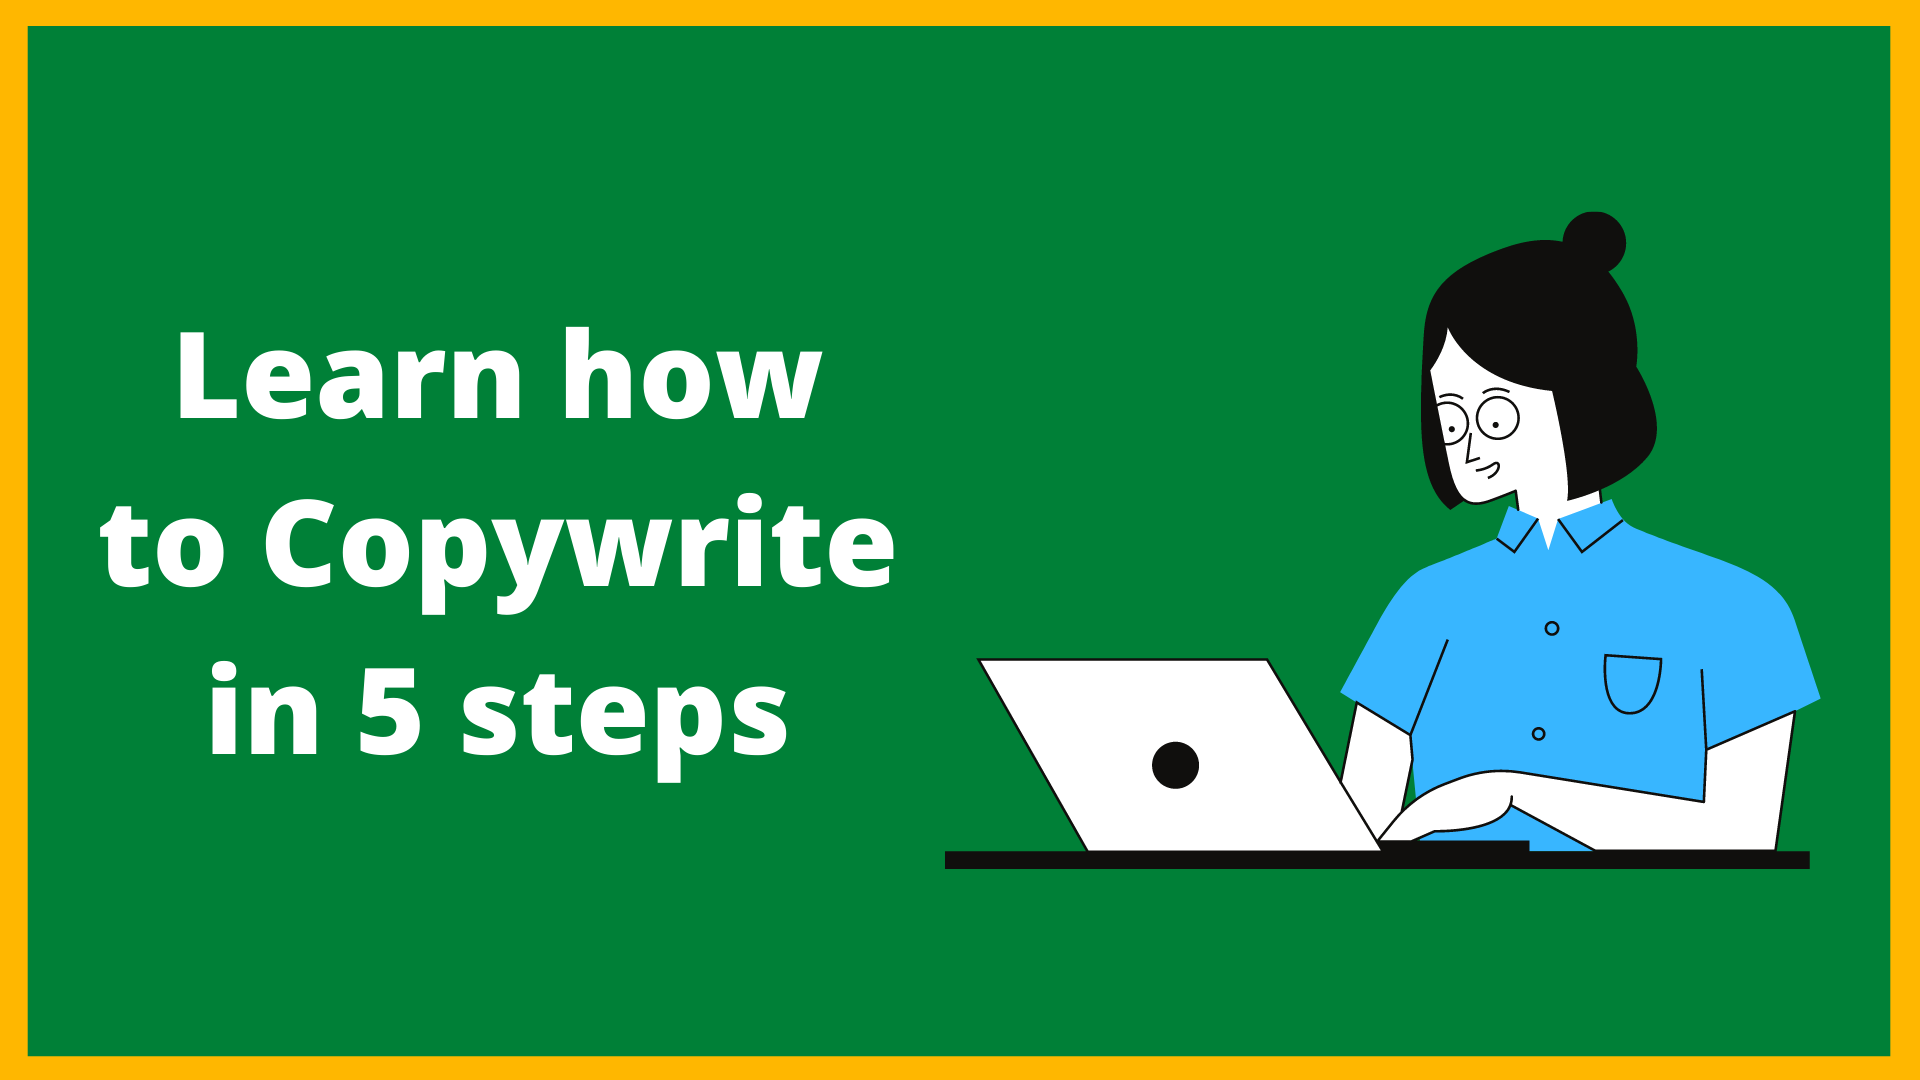 A 5-Step Guide for Copywriting